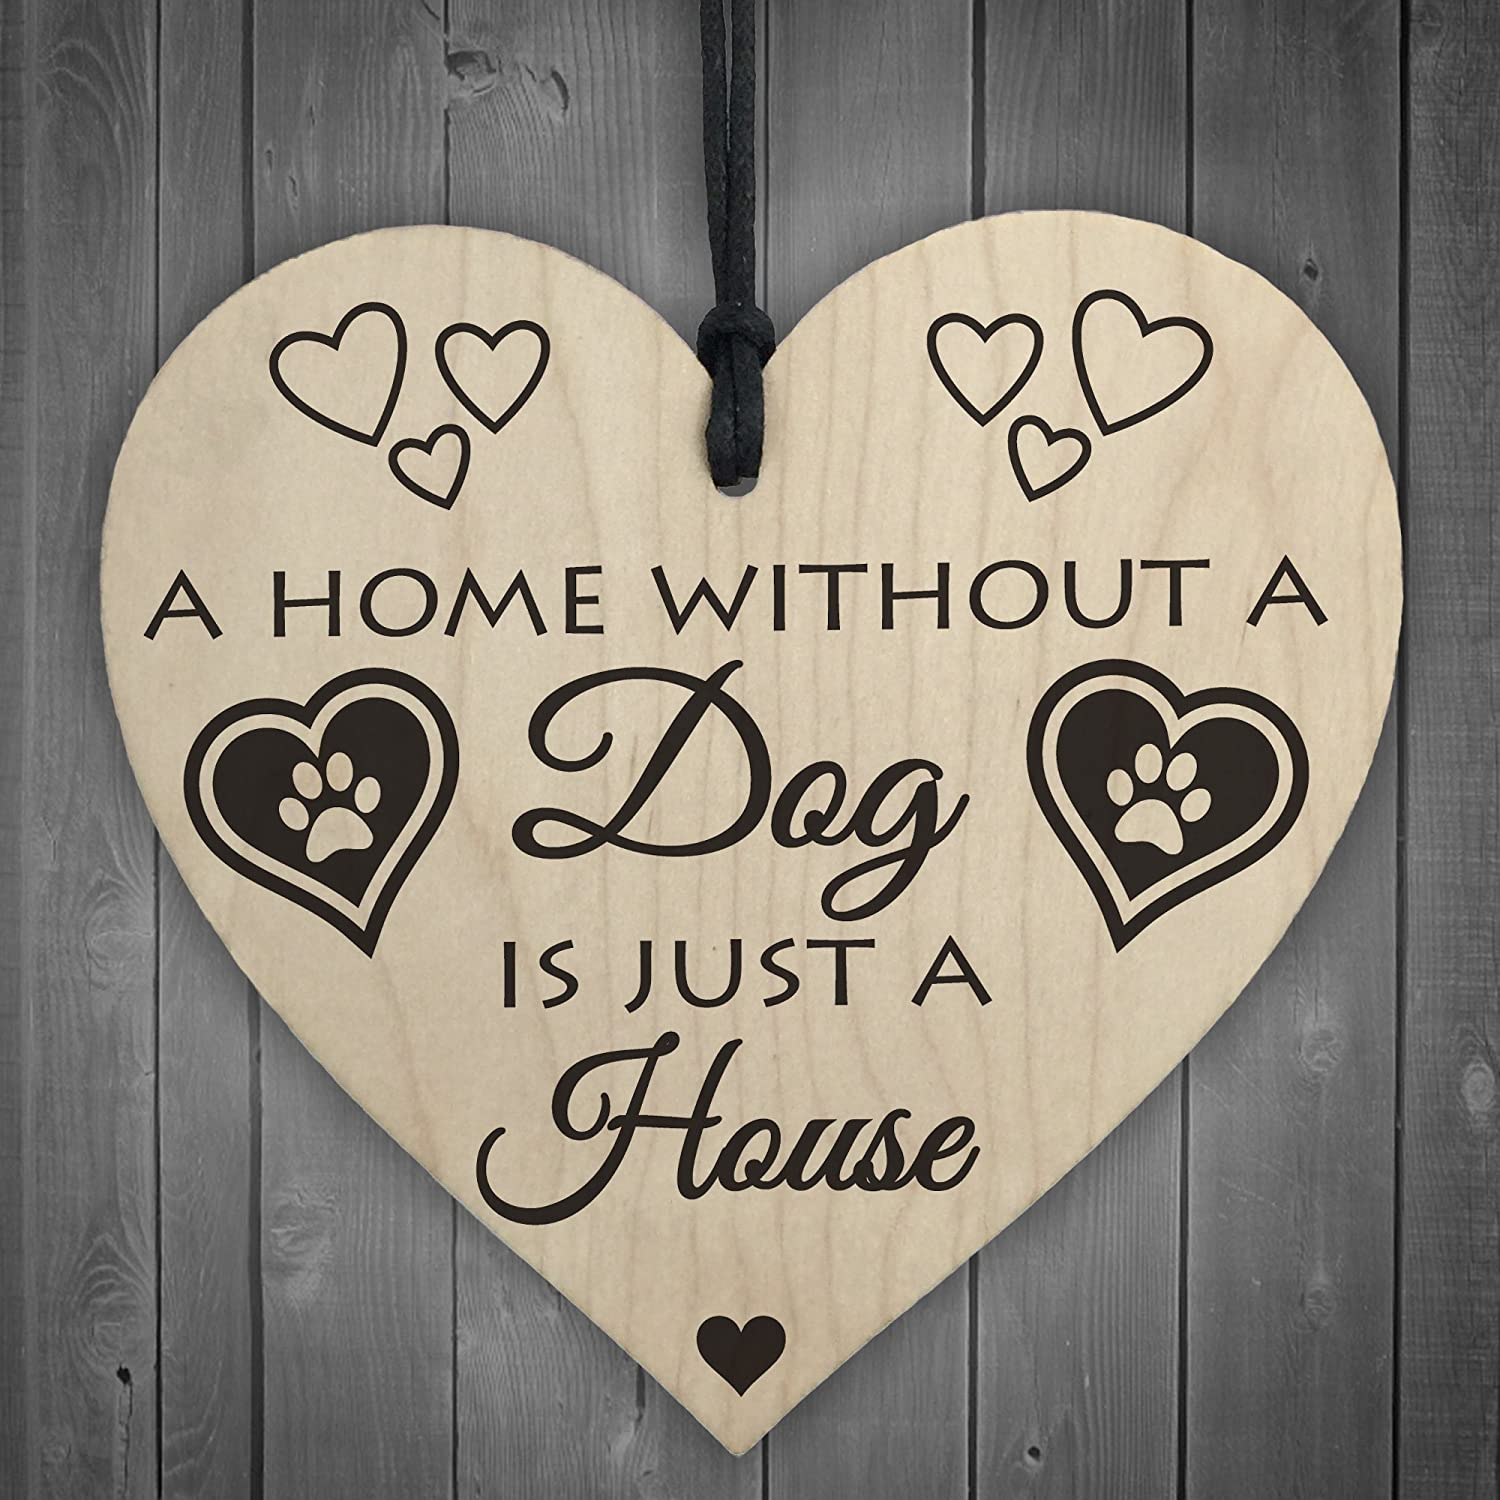 RED OCEAN Home Without A Dog Is Just A House Wooden Hanging Heart Shaped Plaque Gift Sign